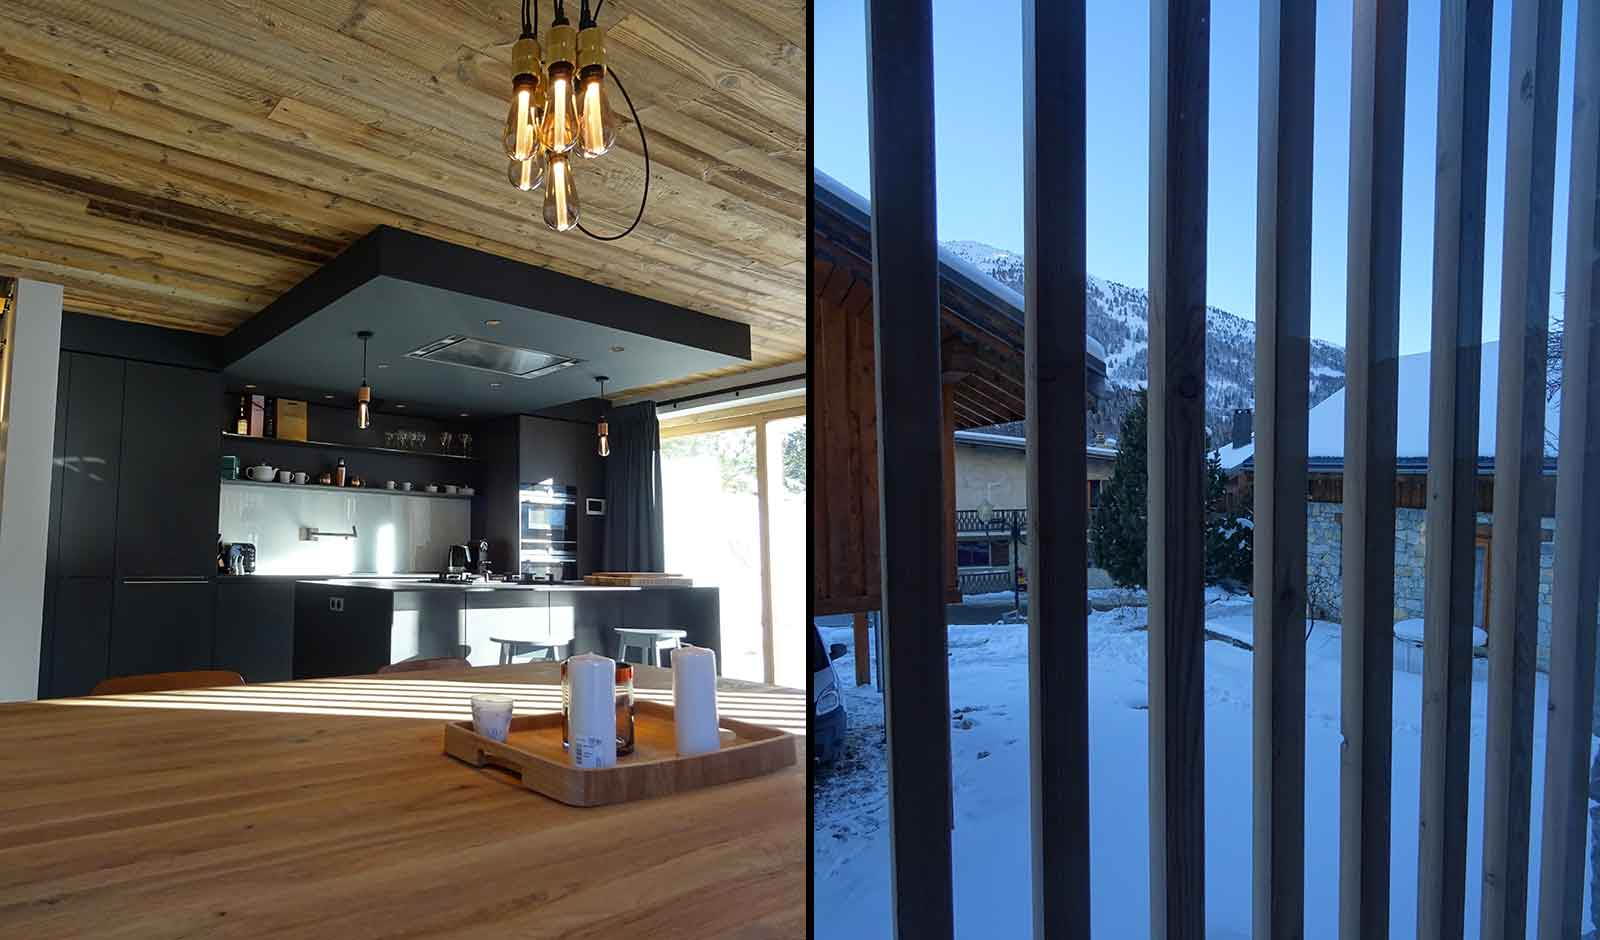 chalet-charlie-4-atelier-crea-and-co-architecte-design-project-manager-meribel-savoie